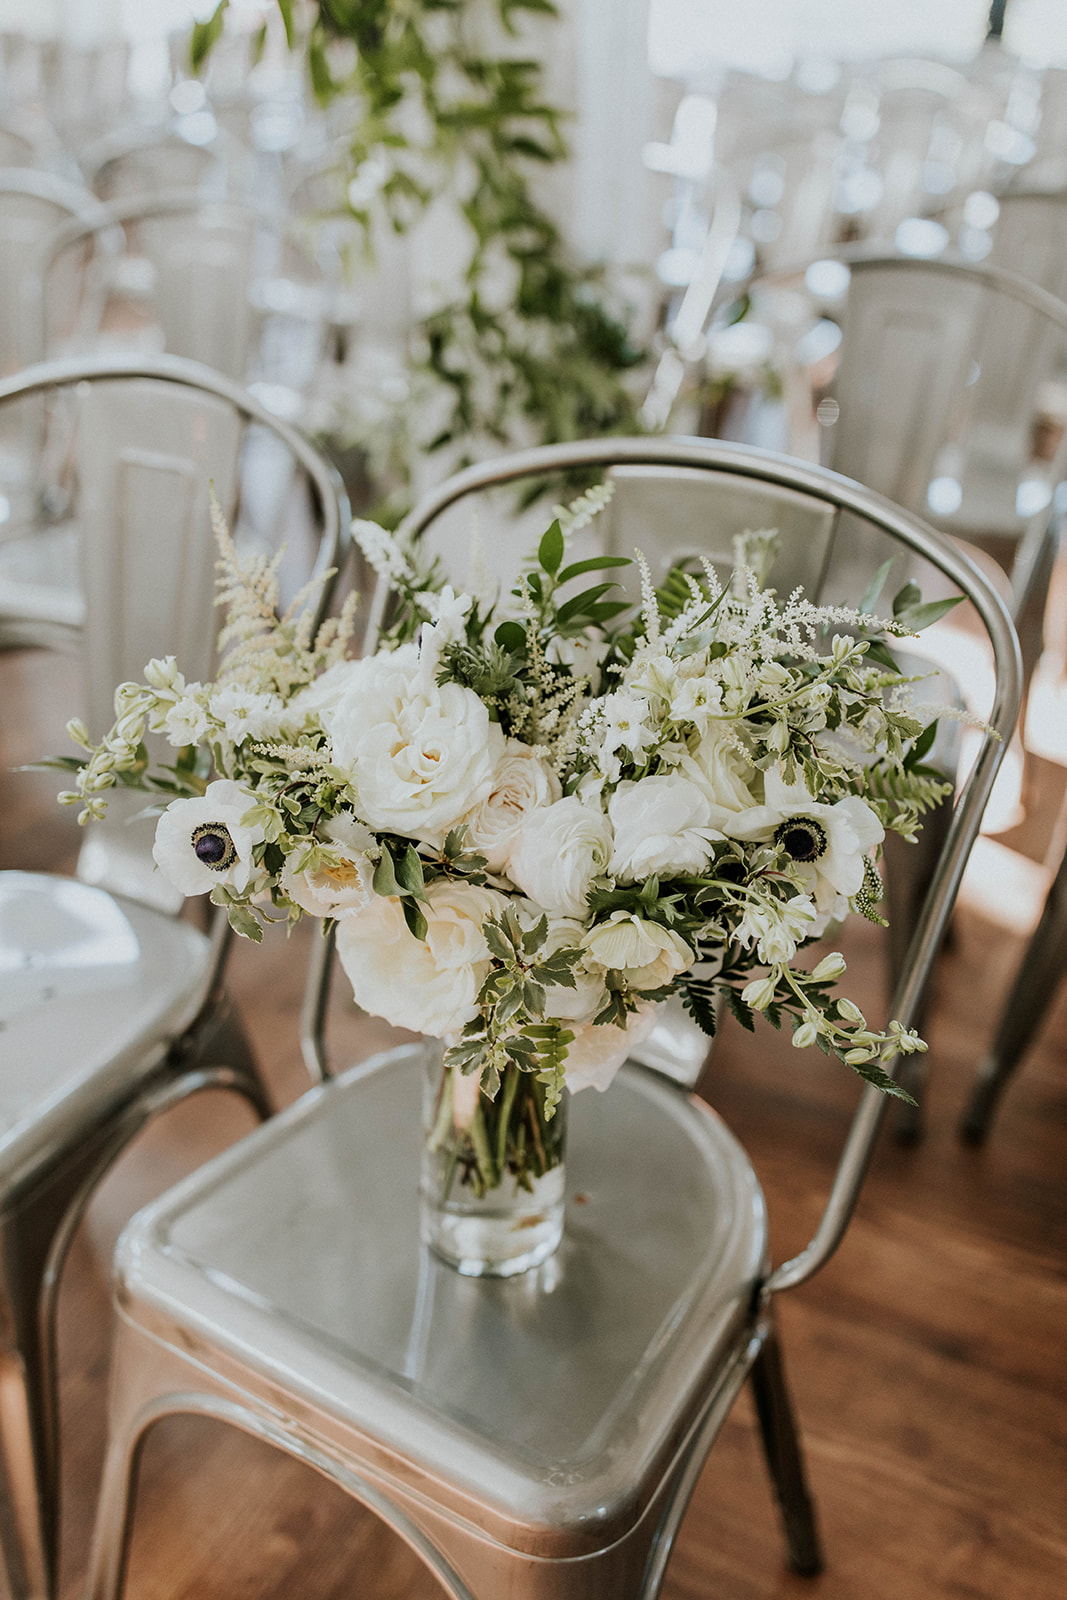 White and greenery wedding flowers | Nashville Bride Guide